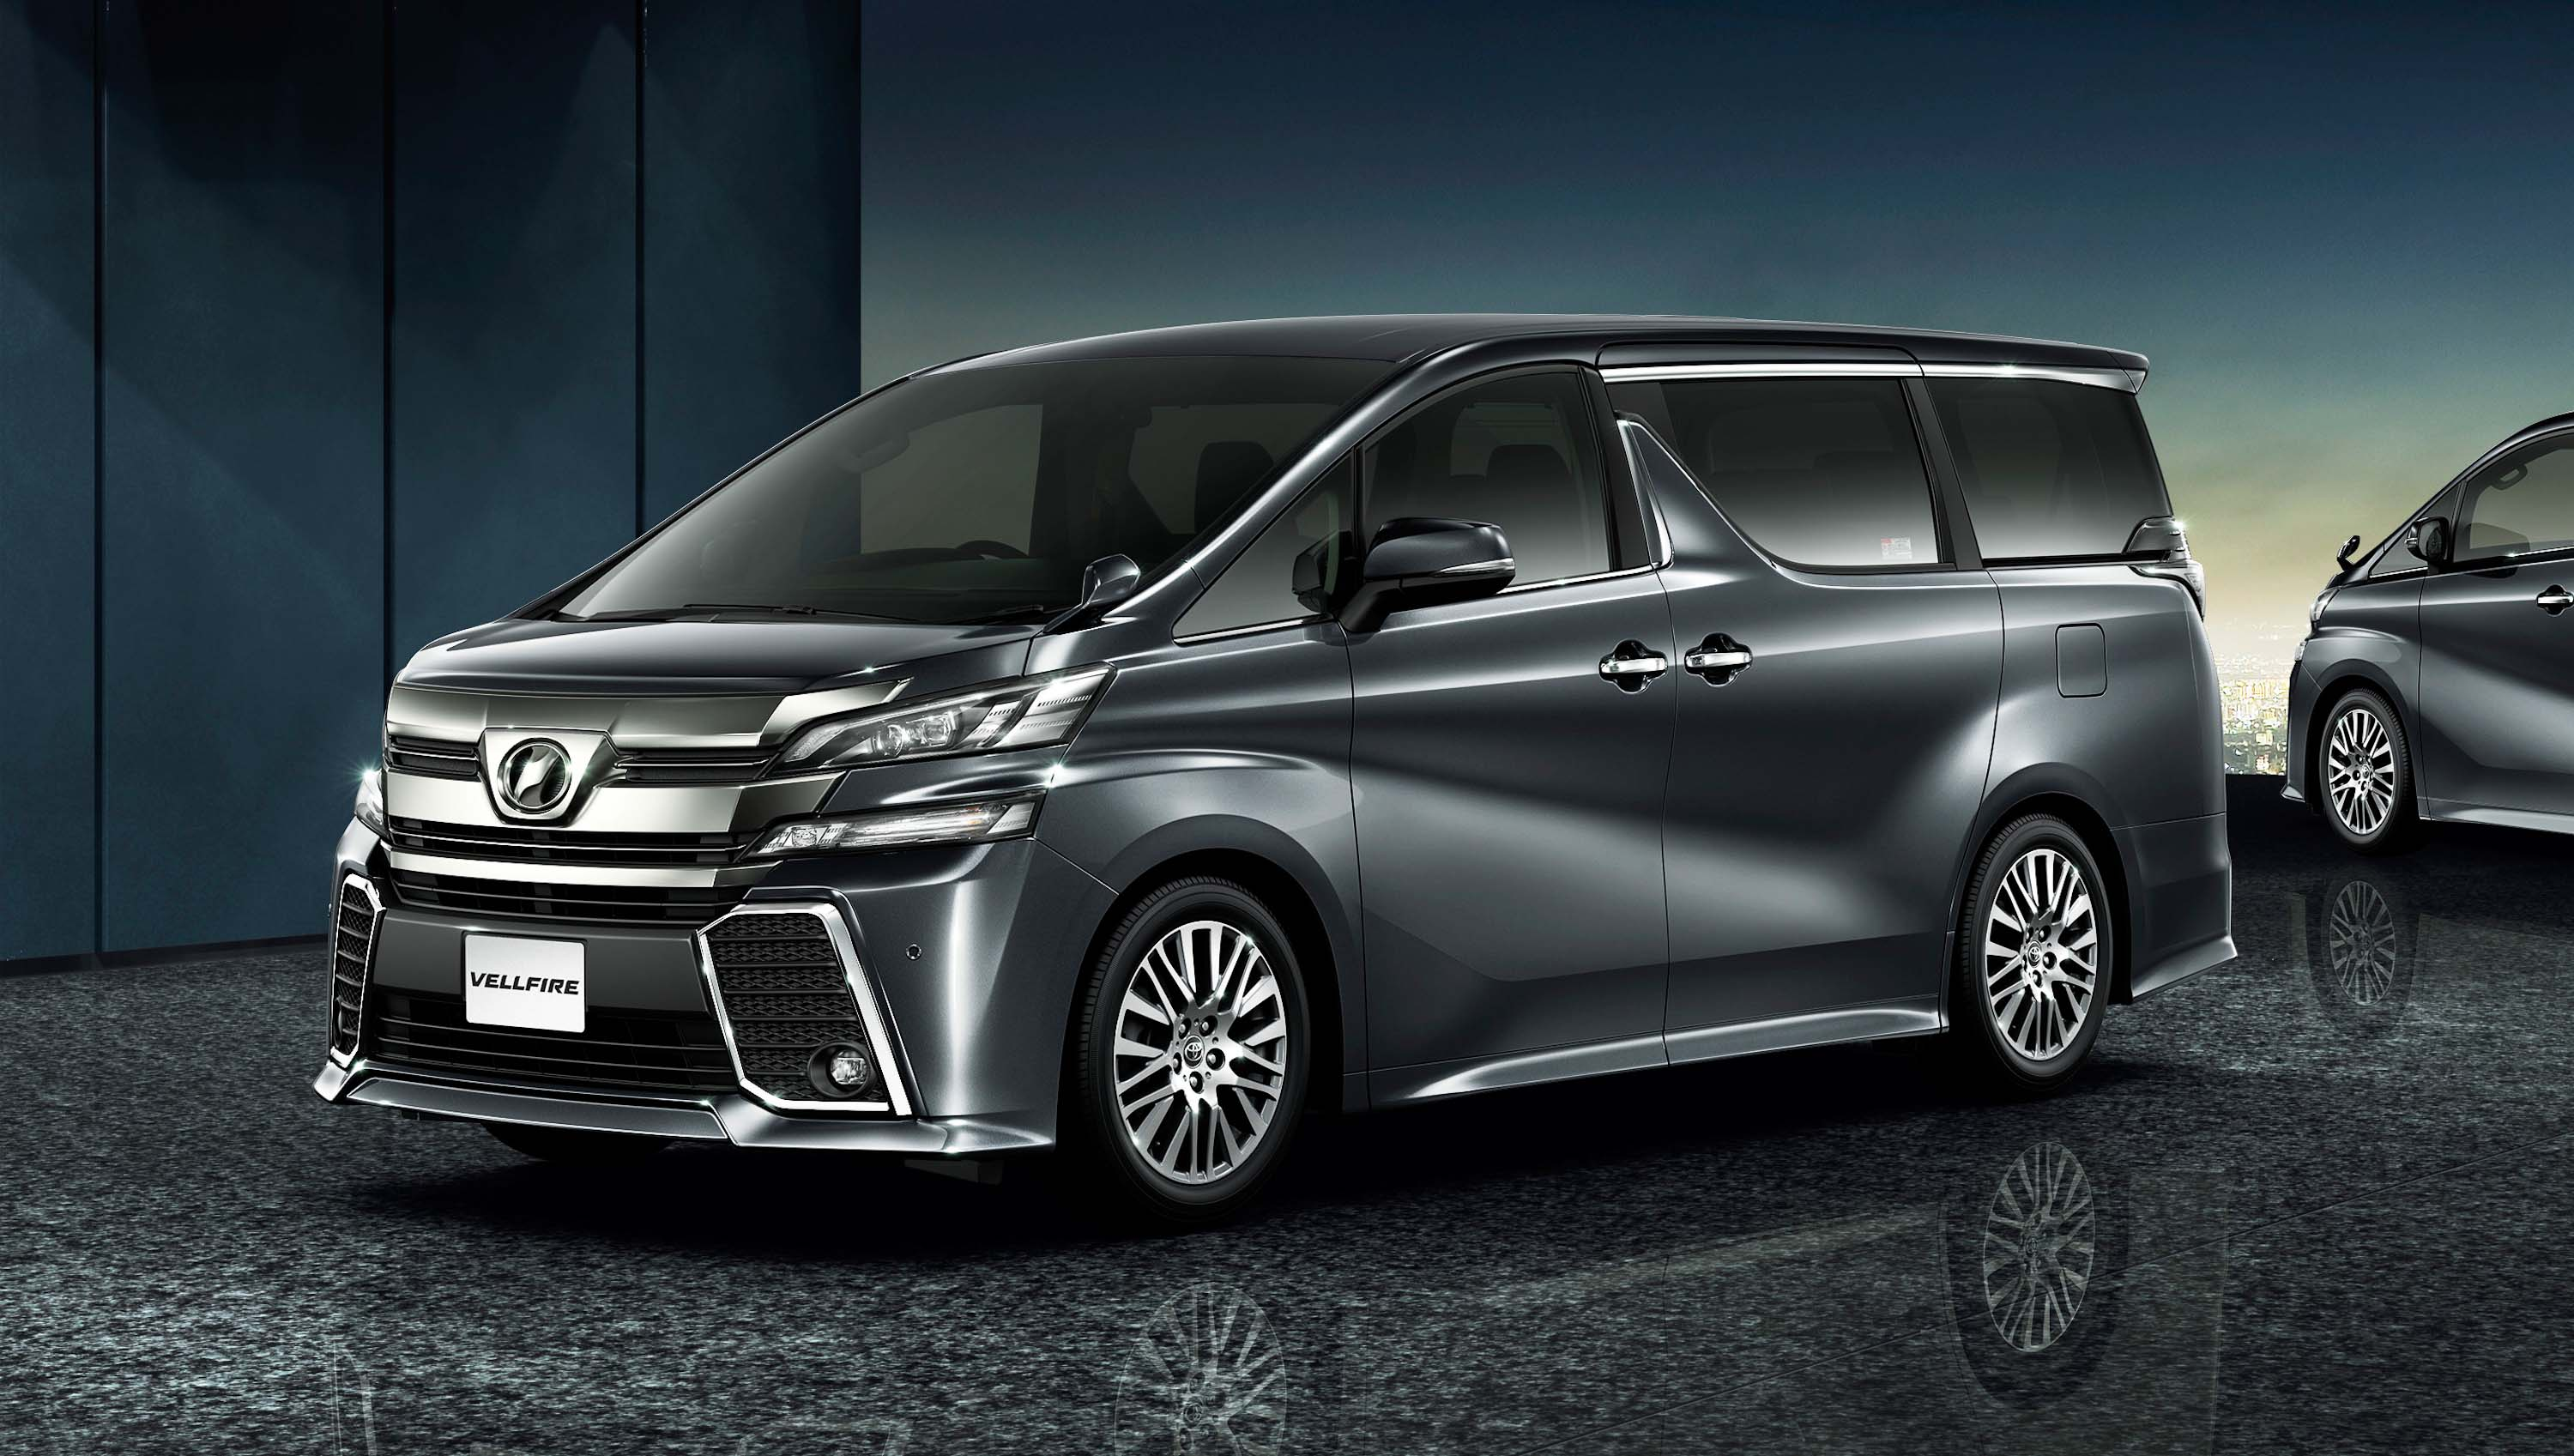 Toyota Vellfire 3rd Generation Mpv Photo Gallery